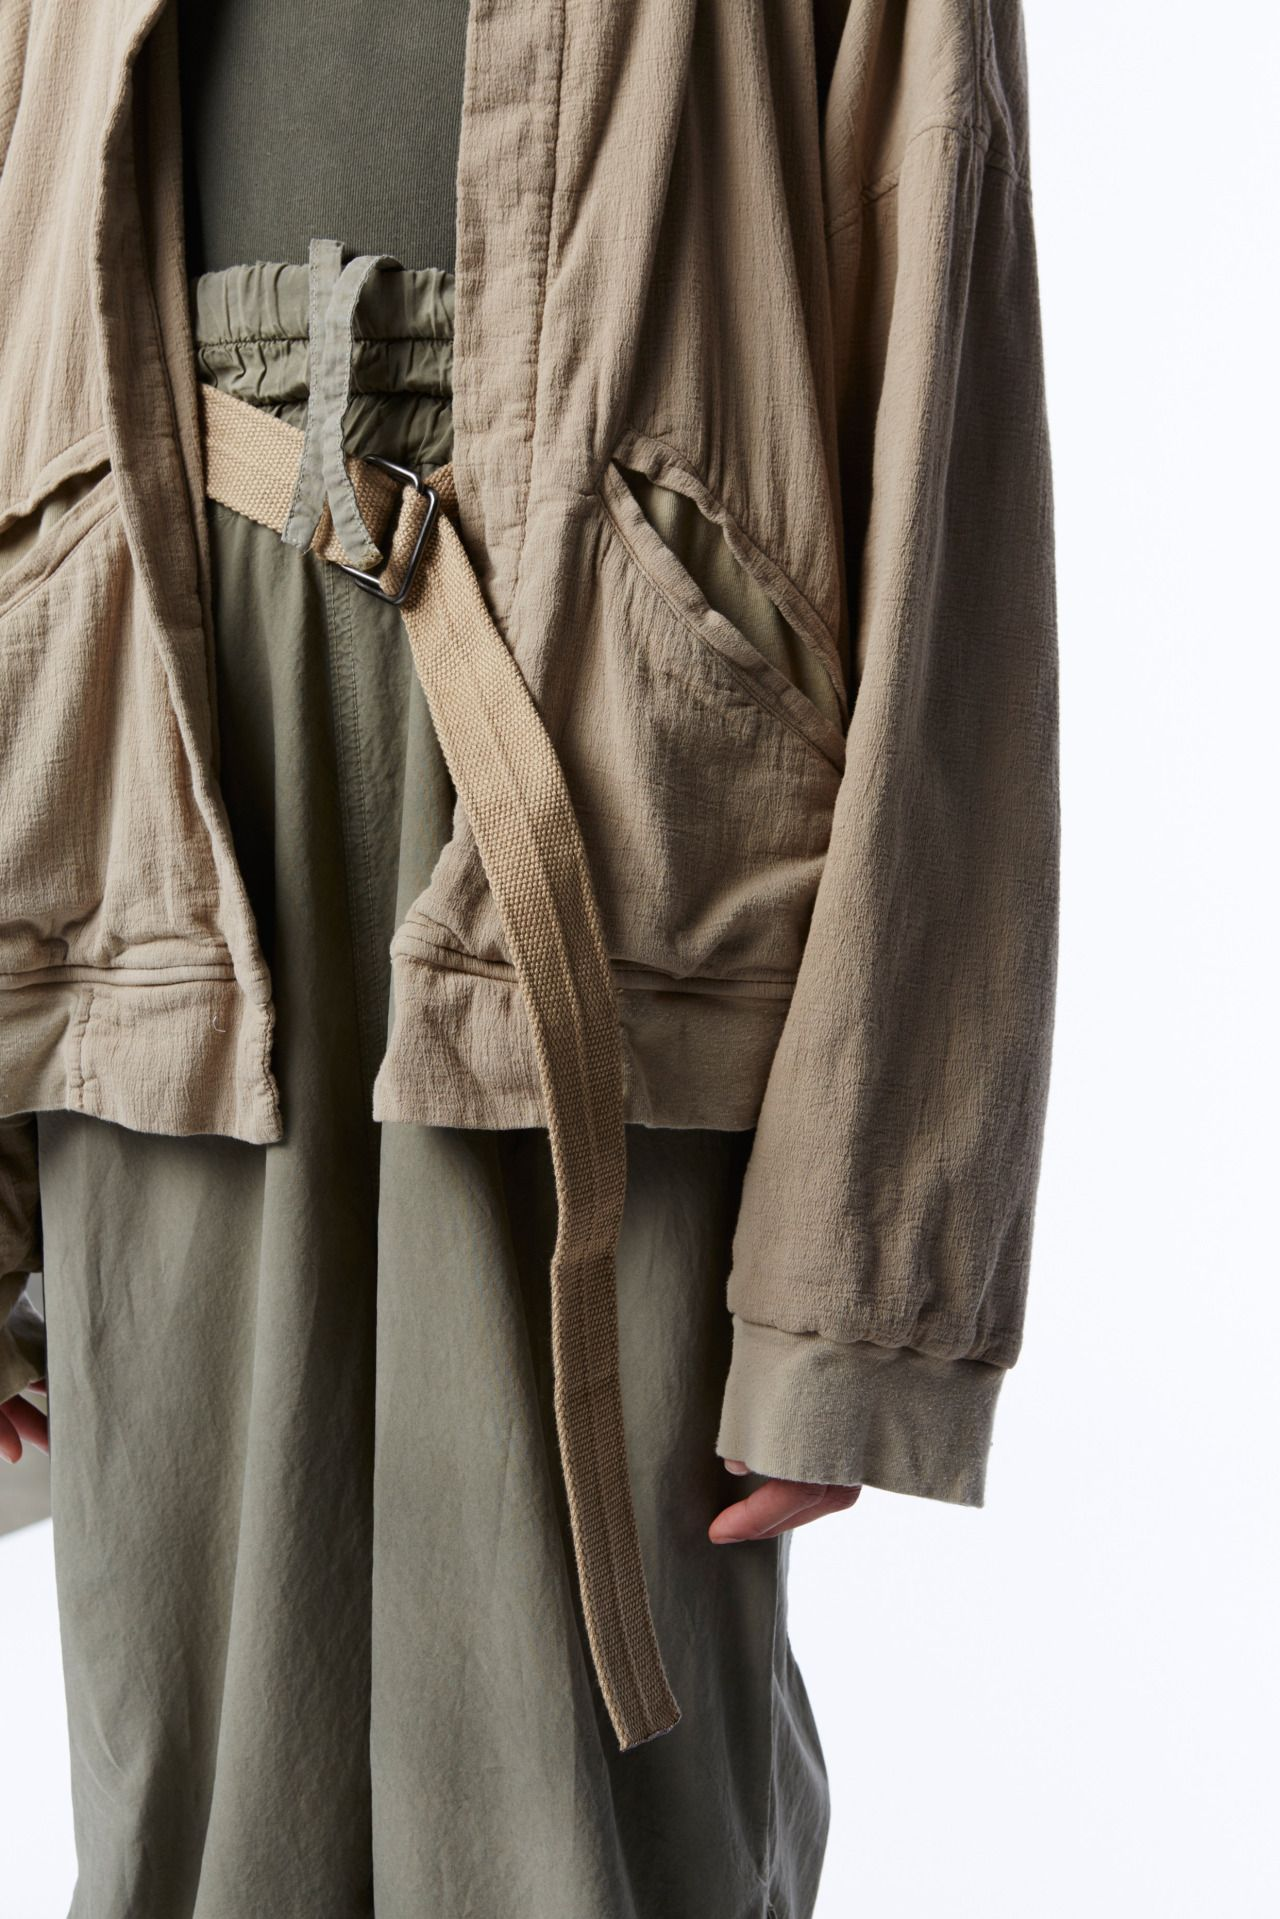 c4b816c73ce Yeezy Spring 2016 Ready-to-Wear collection via Vogue.More Fashion here.